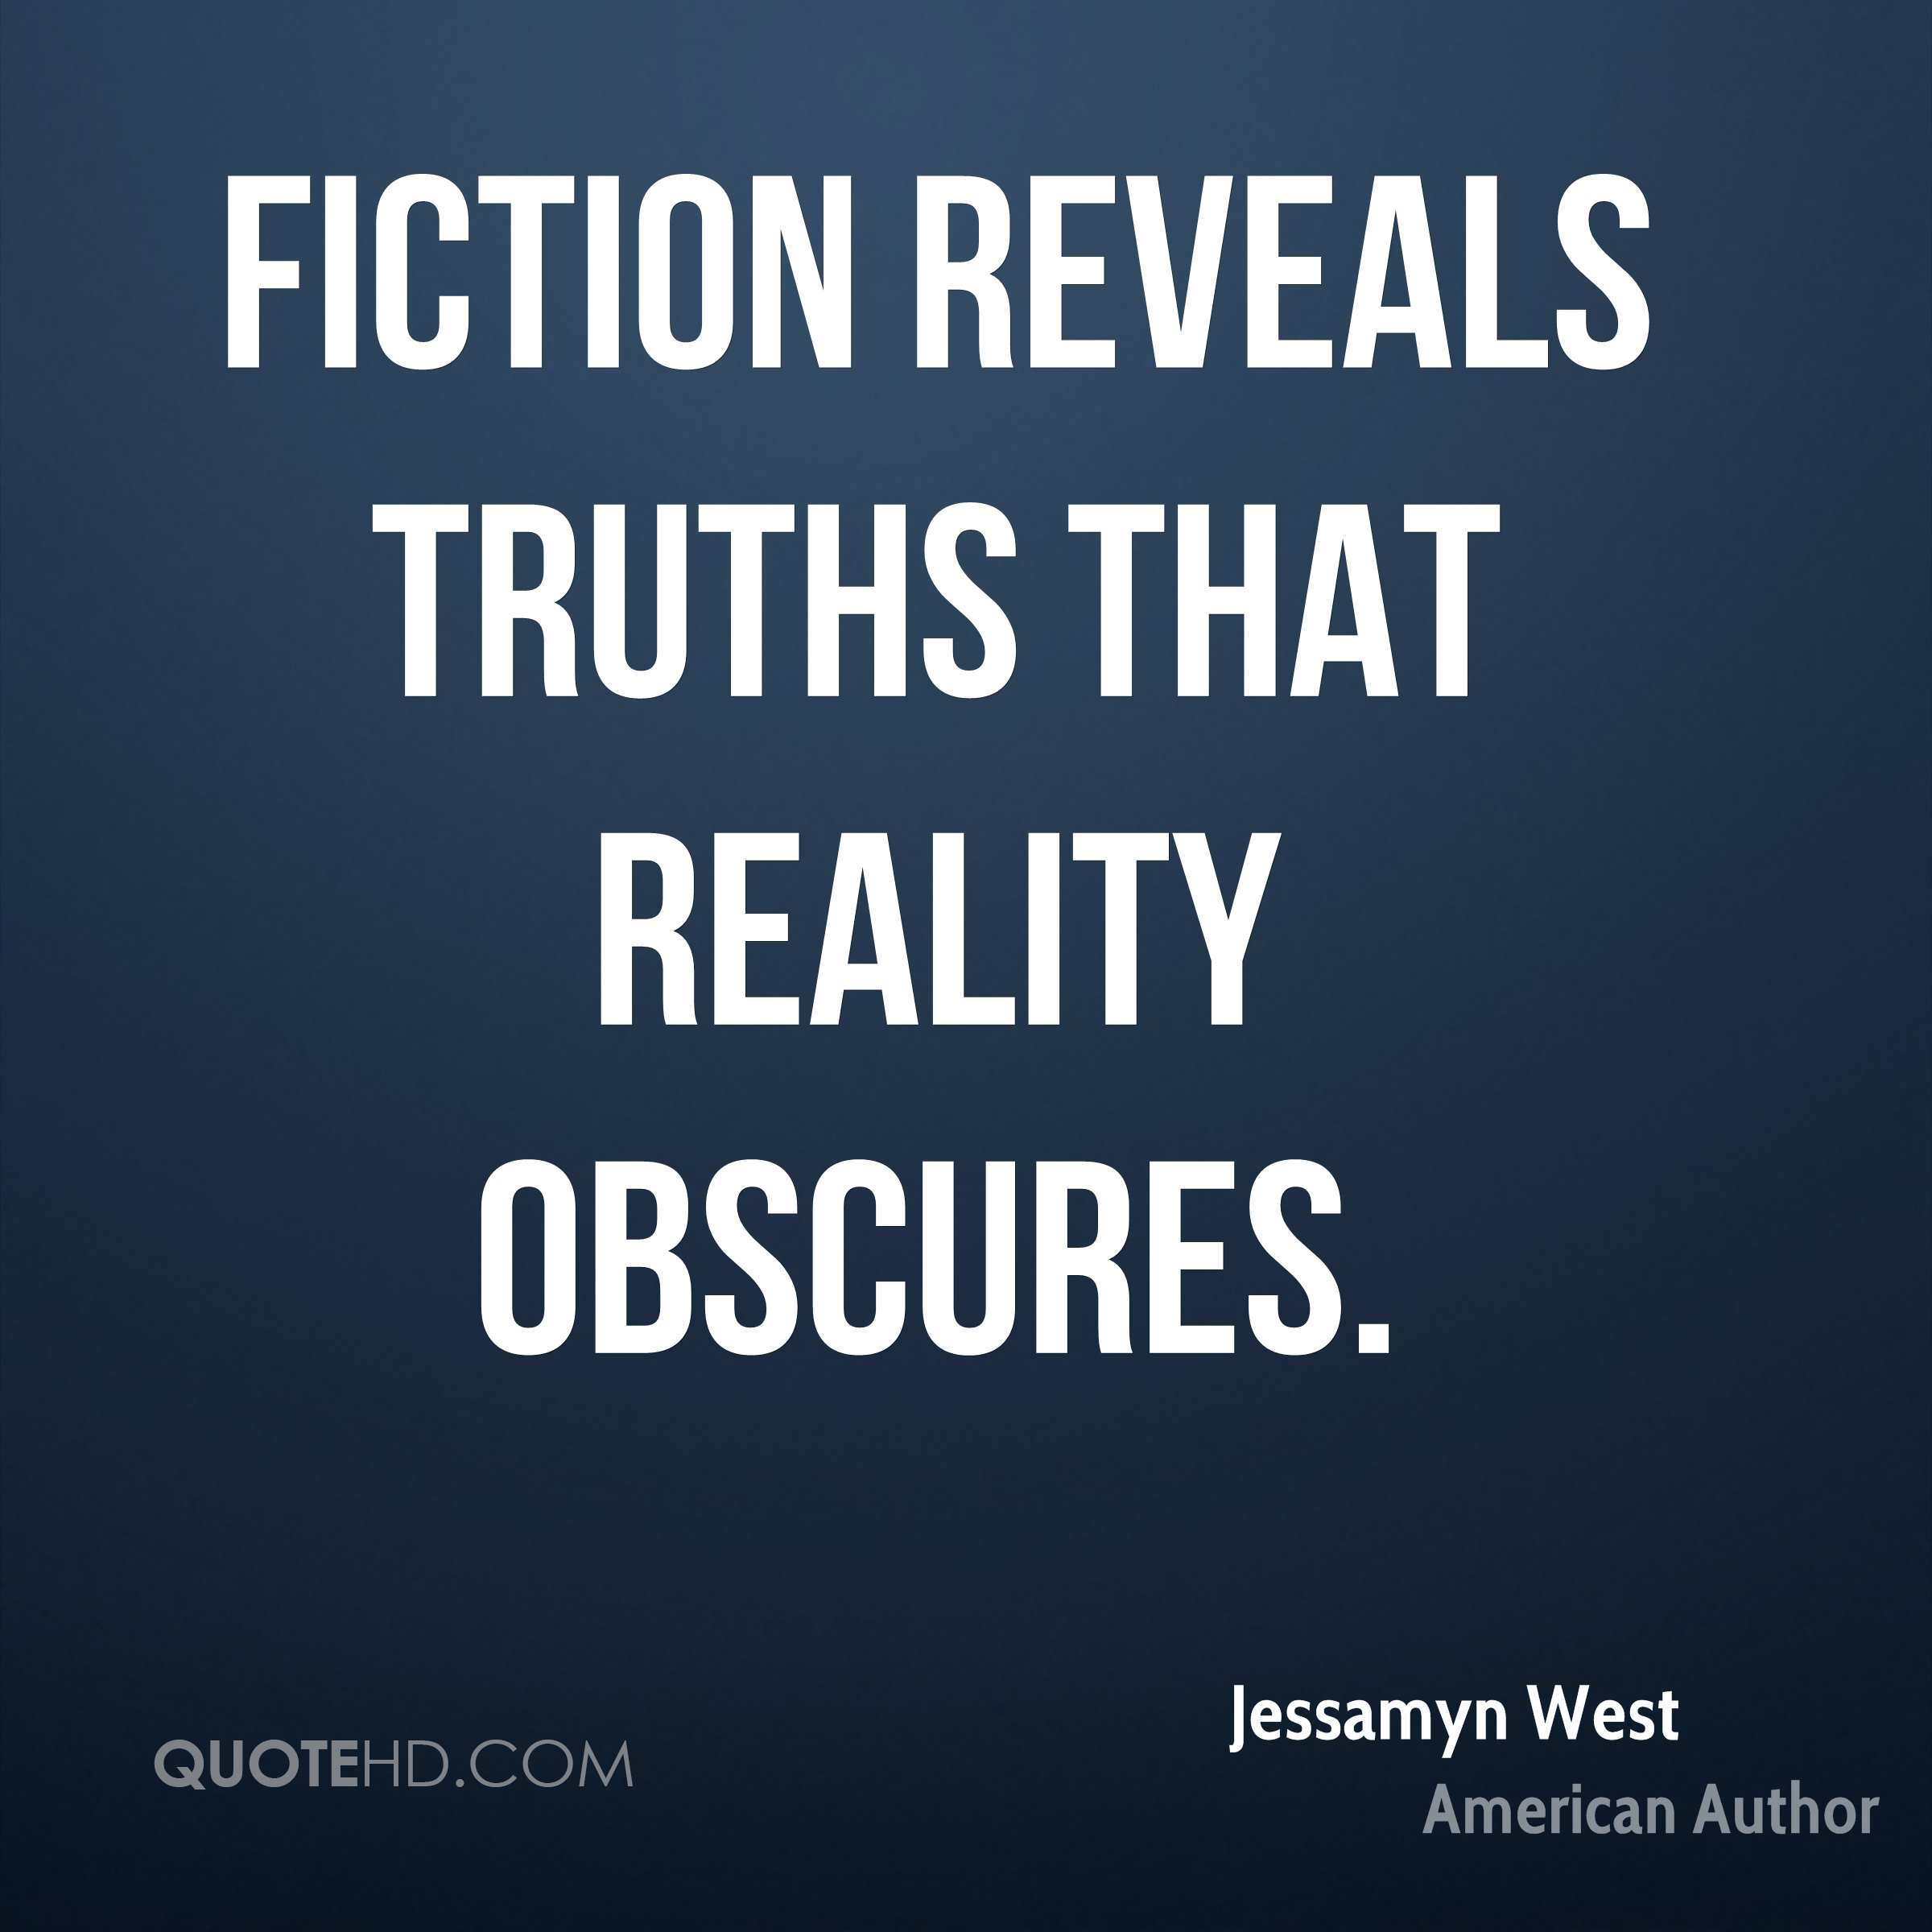 Fiction reveals truths that reality obscures.